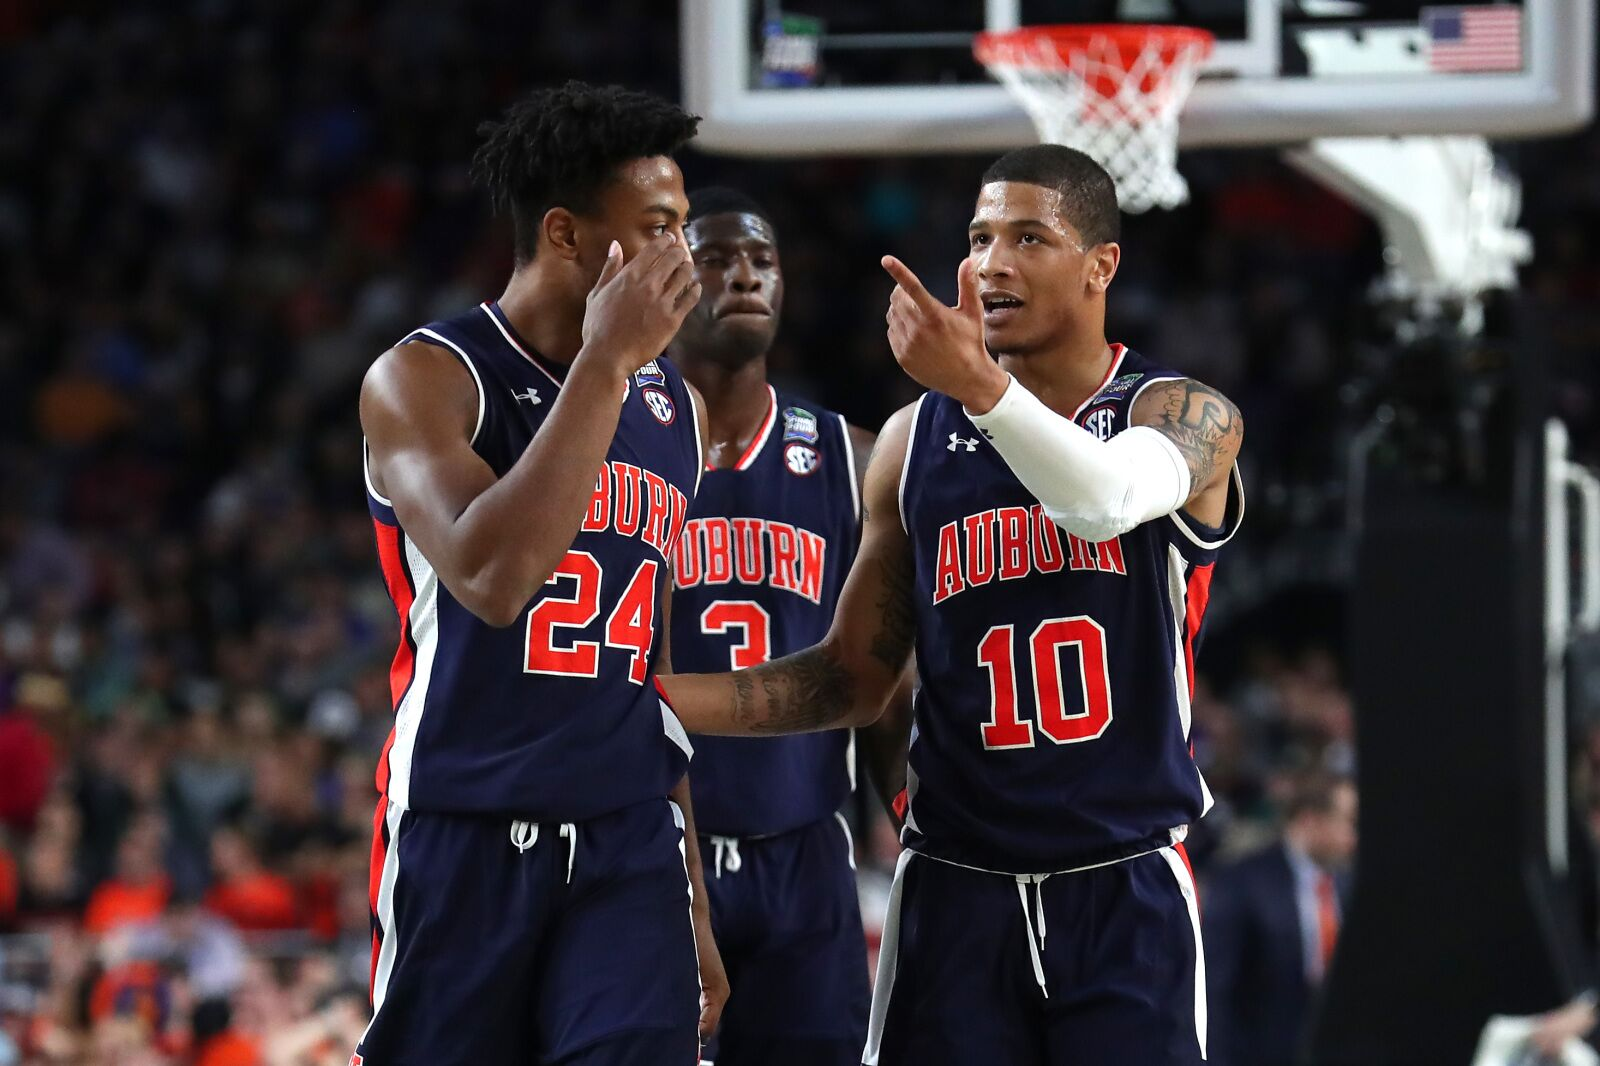 Auburn Vs Richmond 2019 20 Basketball Game Preview Tv Schedule